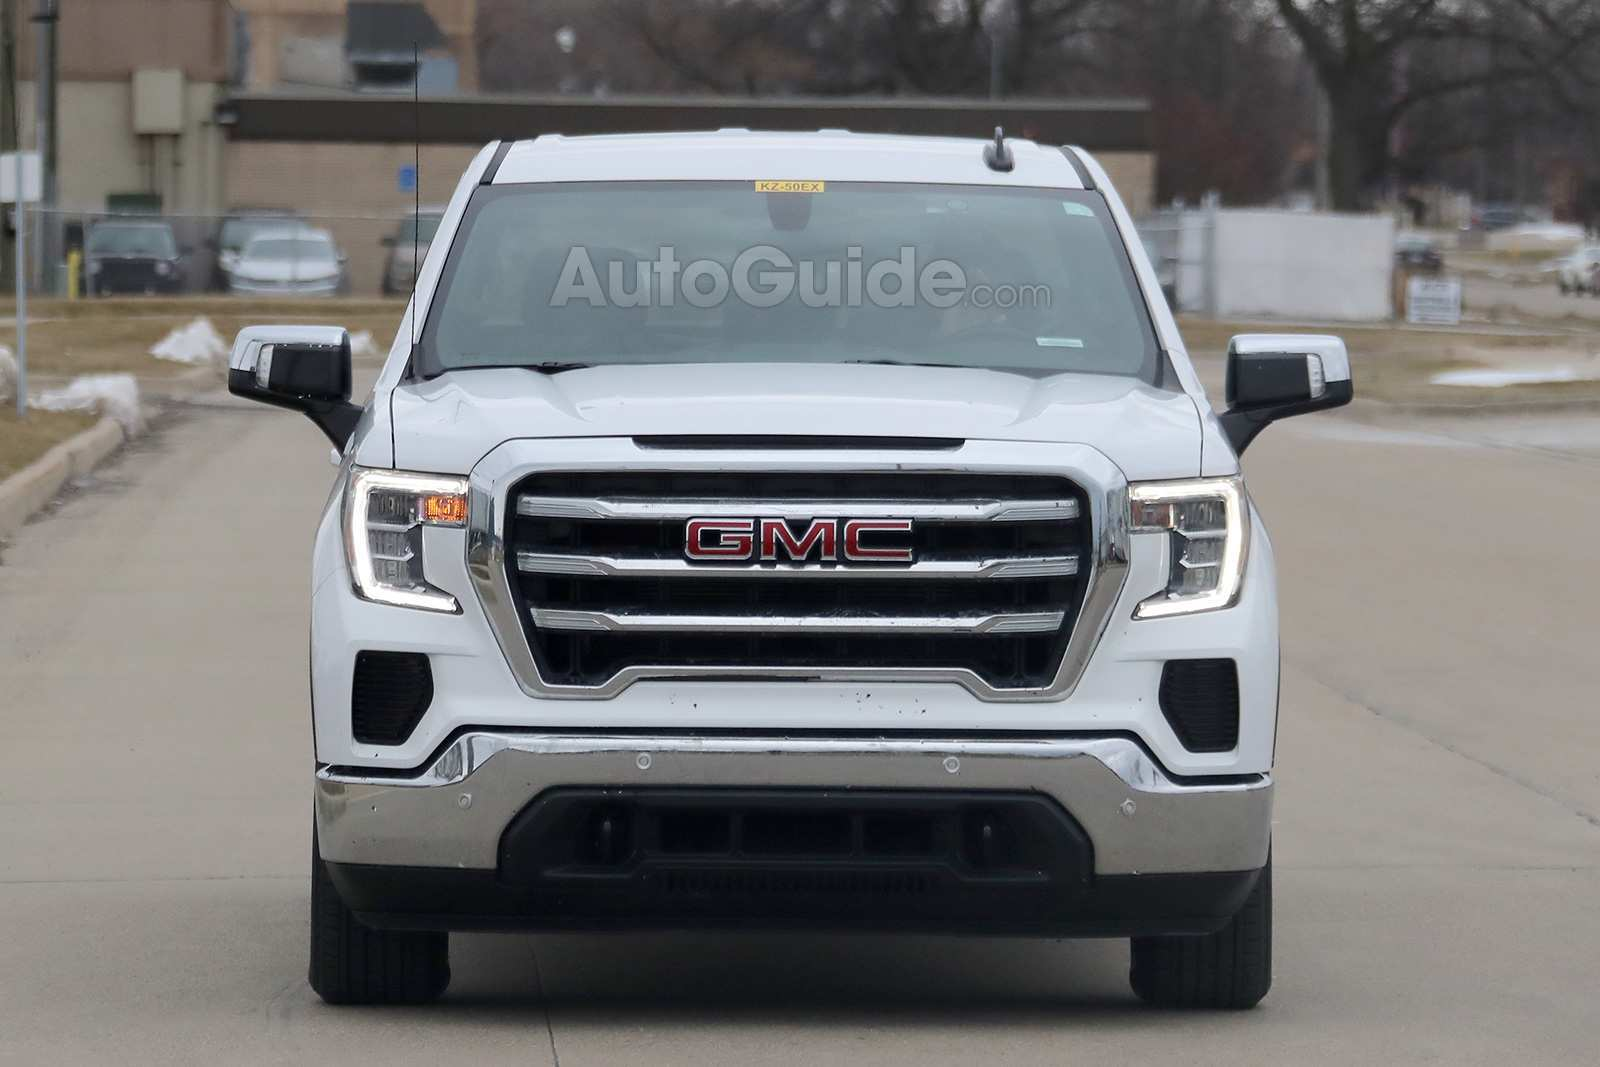 81 All New The Images Of 2019 Gmc Sierra Release Specs And Review Research New for The Images Of 2019 Gmc Sierra Release Specs And Review